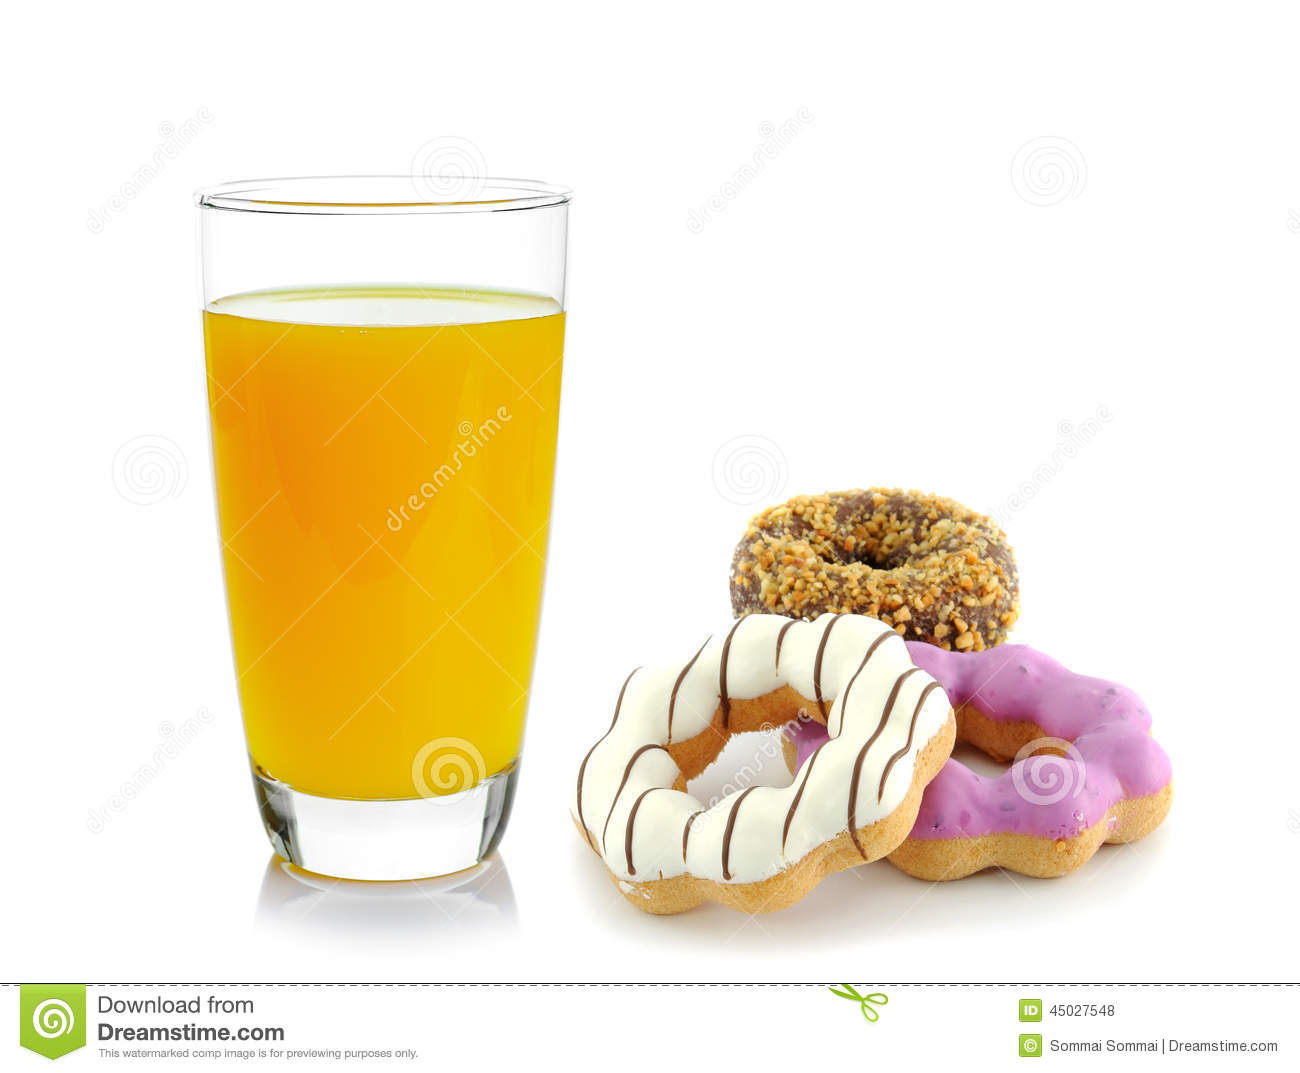 donut and orange juice on white background stock photo cute bunny clipart black and white cute bunny clip art blowing kiss